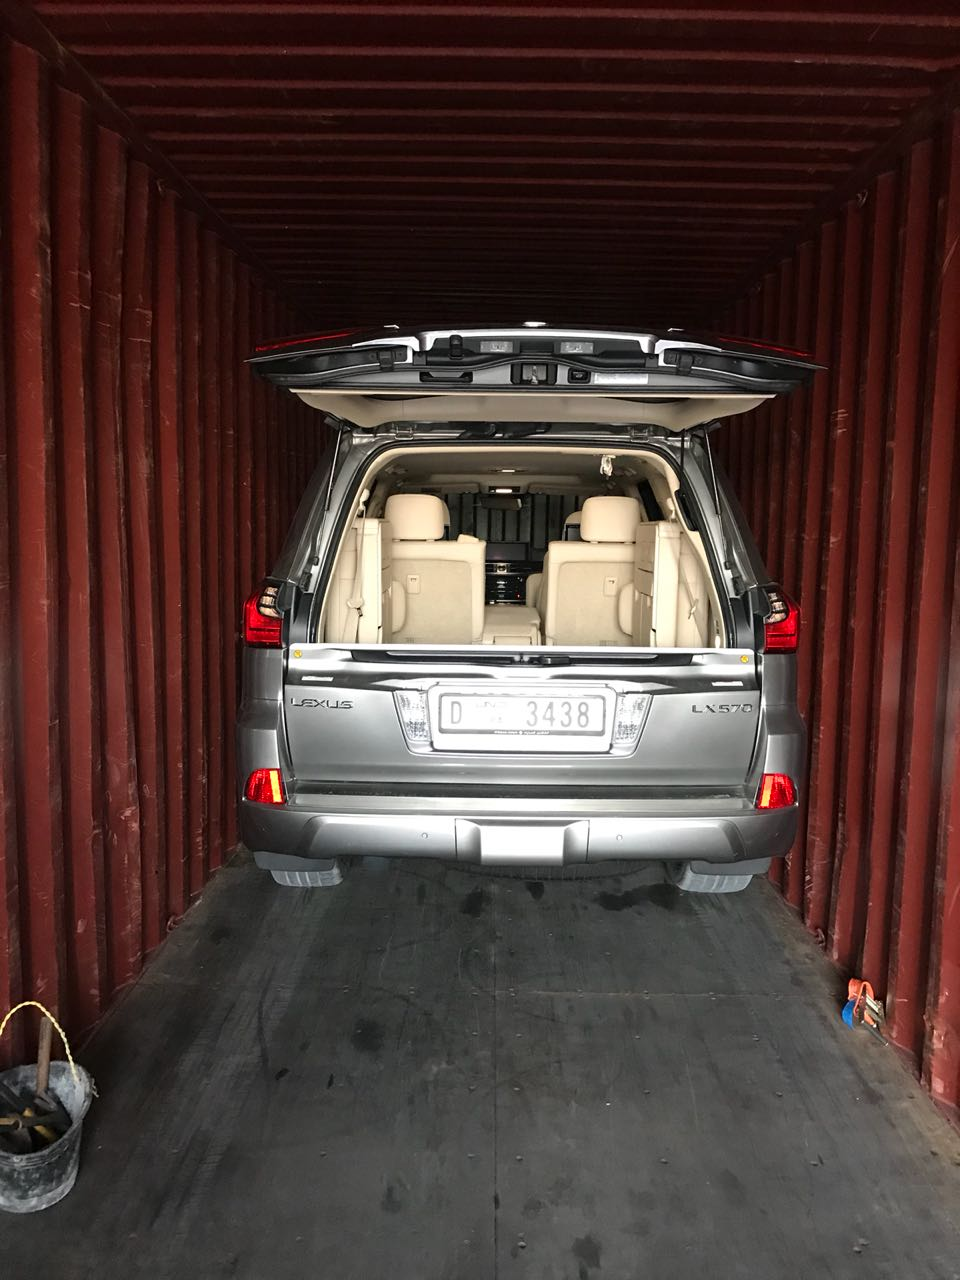 #0 Vehicle relocation services